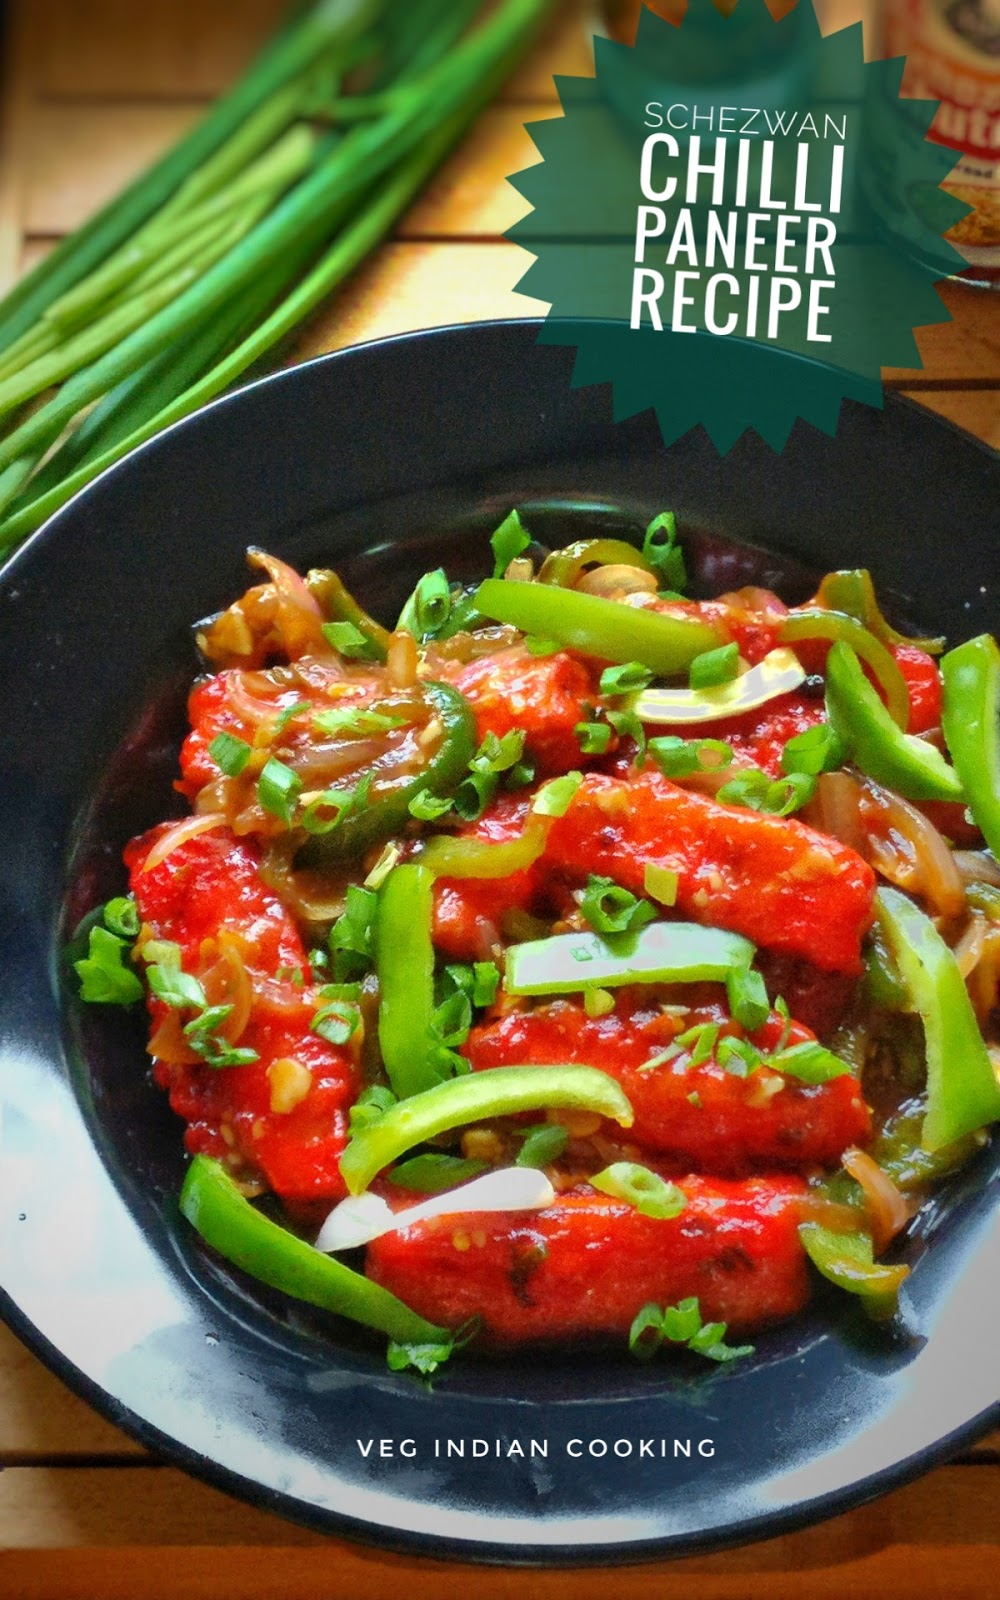 Veg indian cooking restaurant style schezwan chilli paneer how to make schezwan chilli paneer restaurant style indian chinese crispy paneer schezwan recipe indo chinese chings paneer schezwan paneer chilly dry forumfinder Images